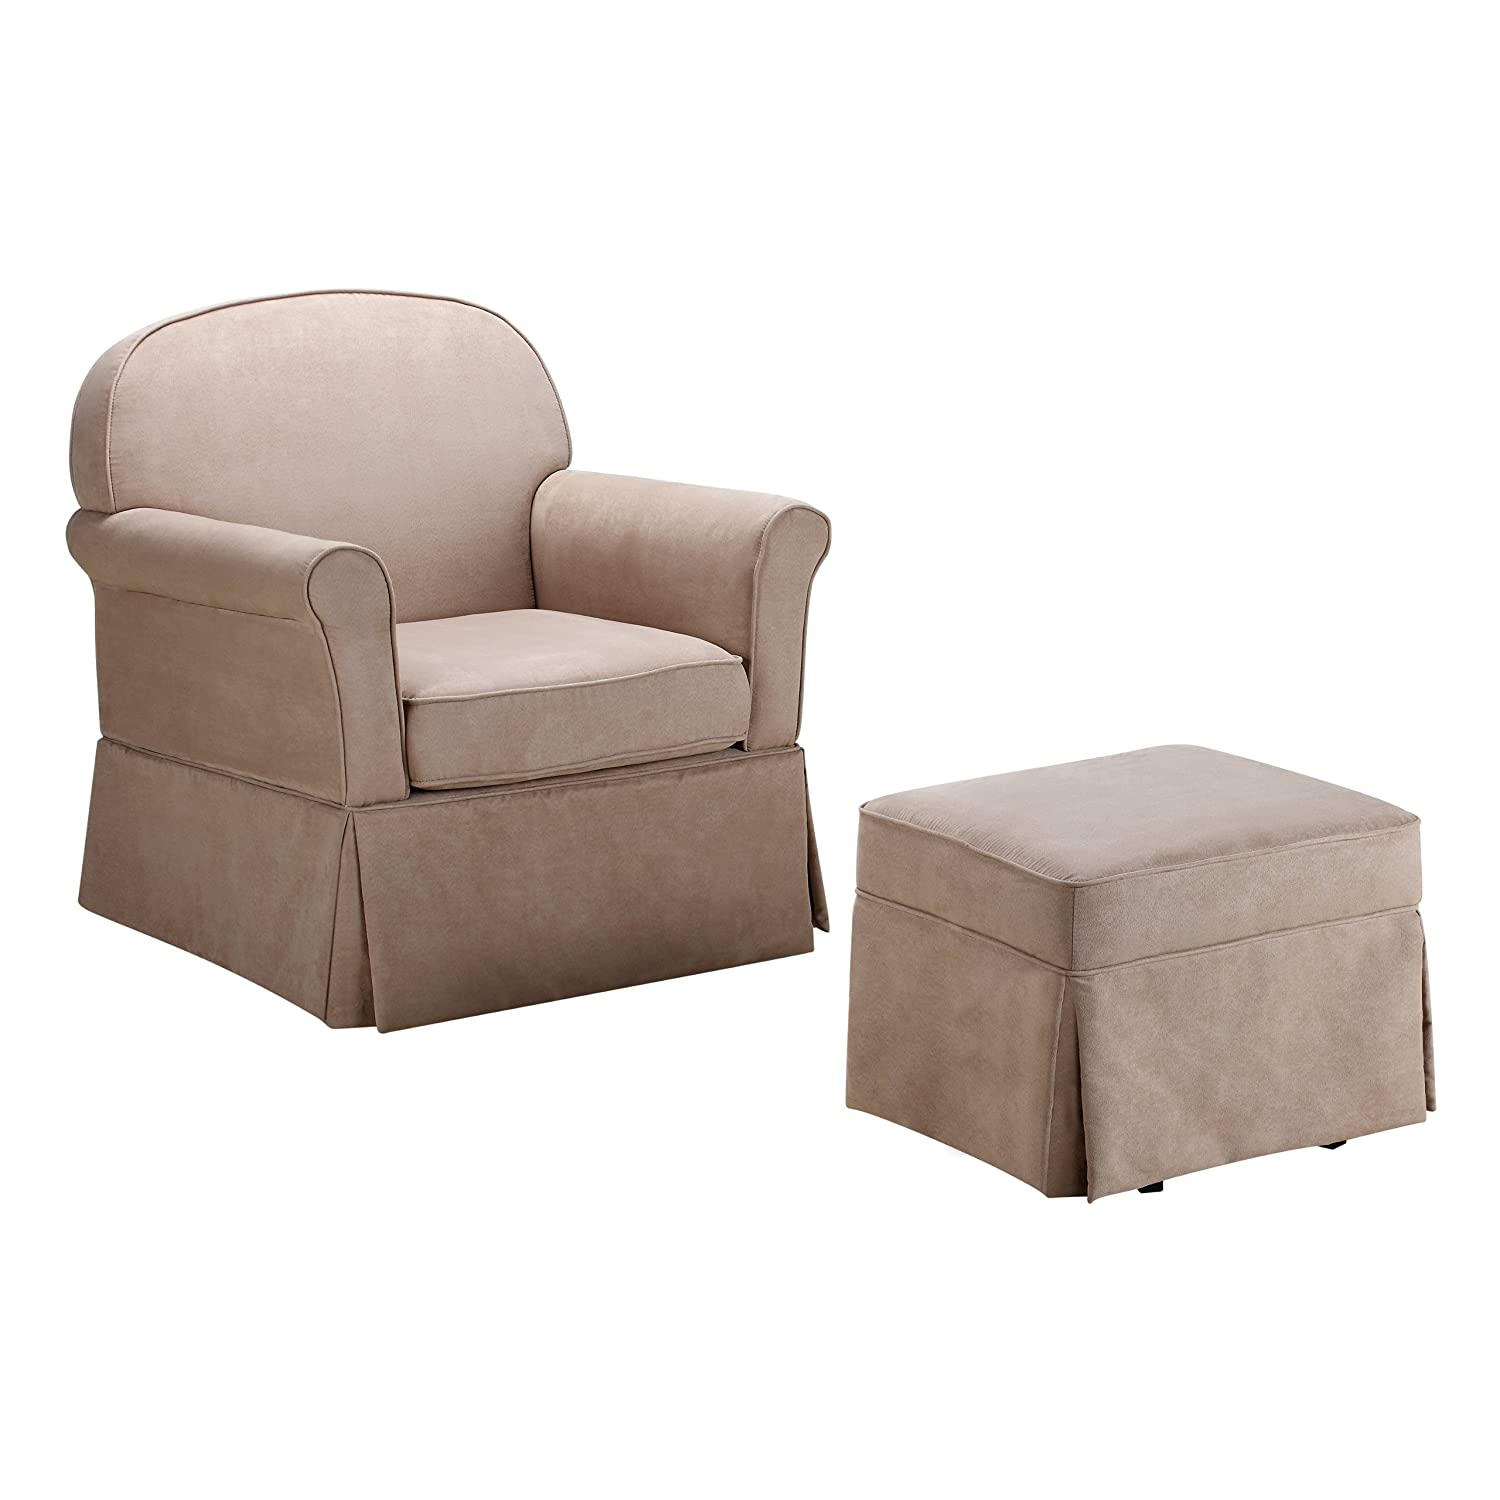 Amazon Baby Relax Swivel Glider and Ottoman Set Hickory